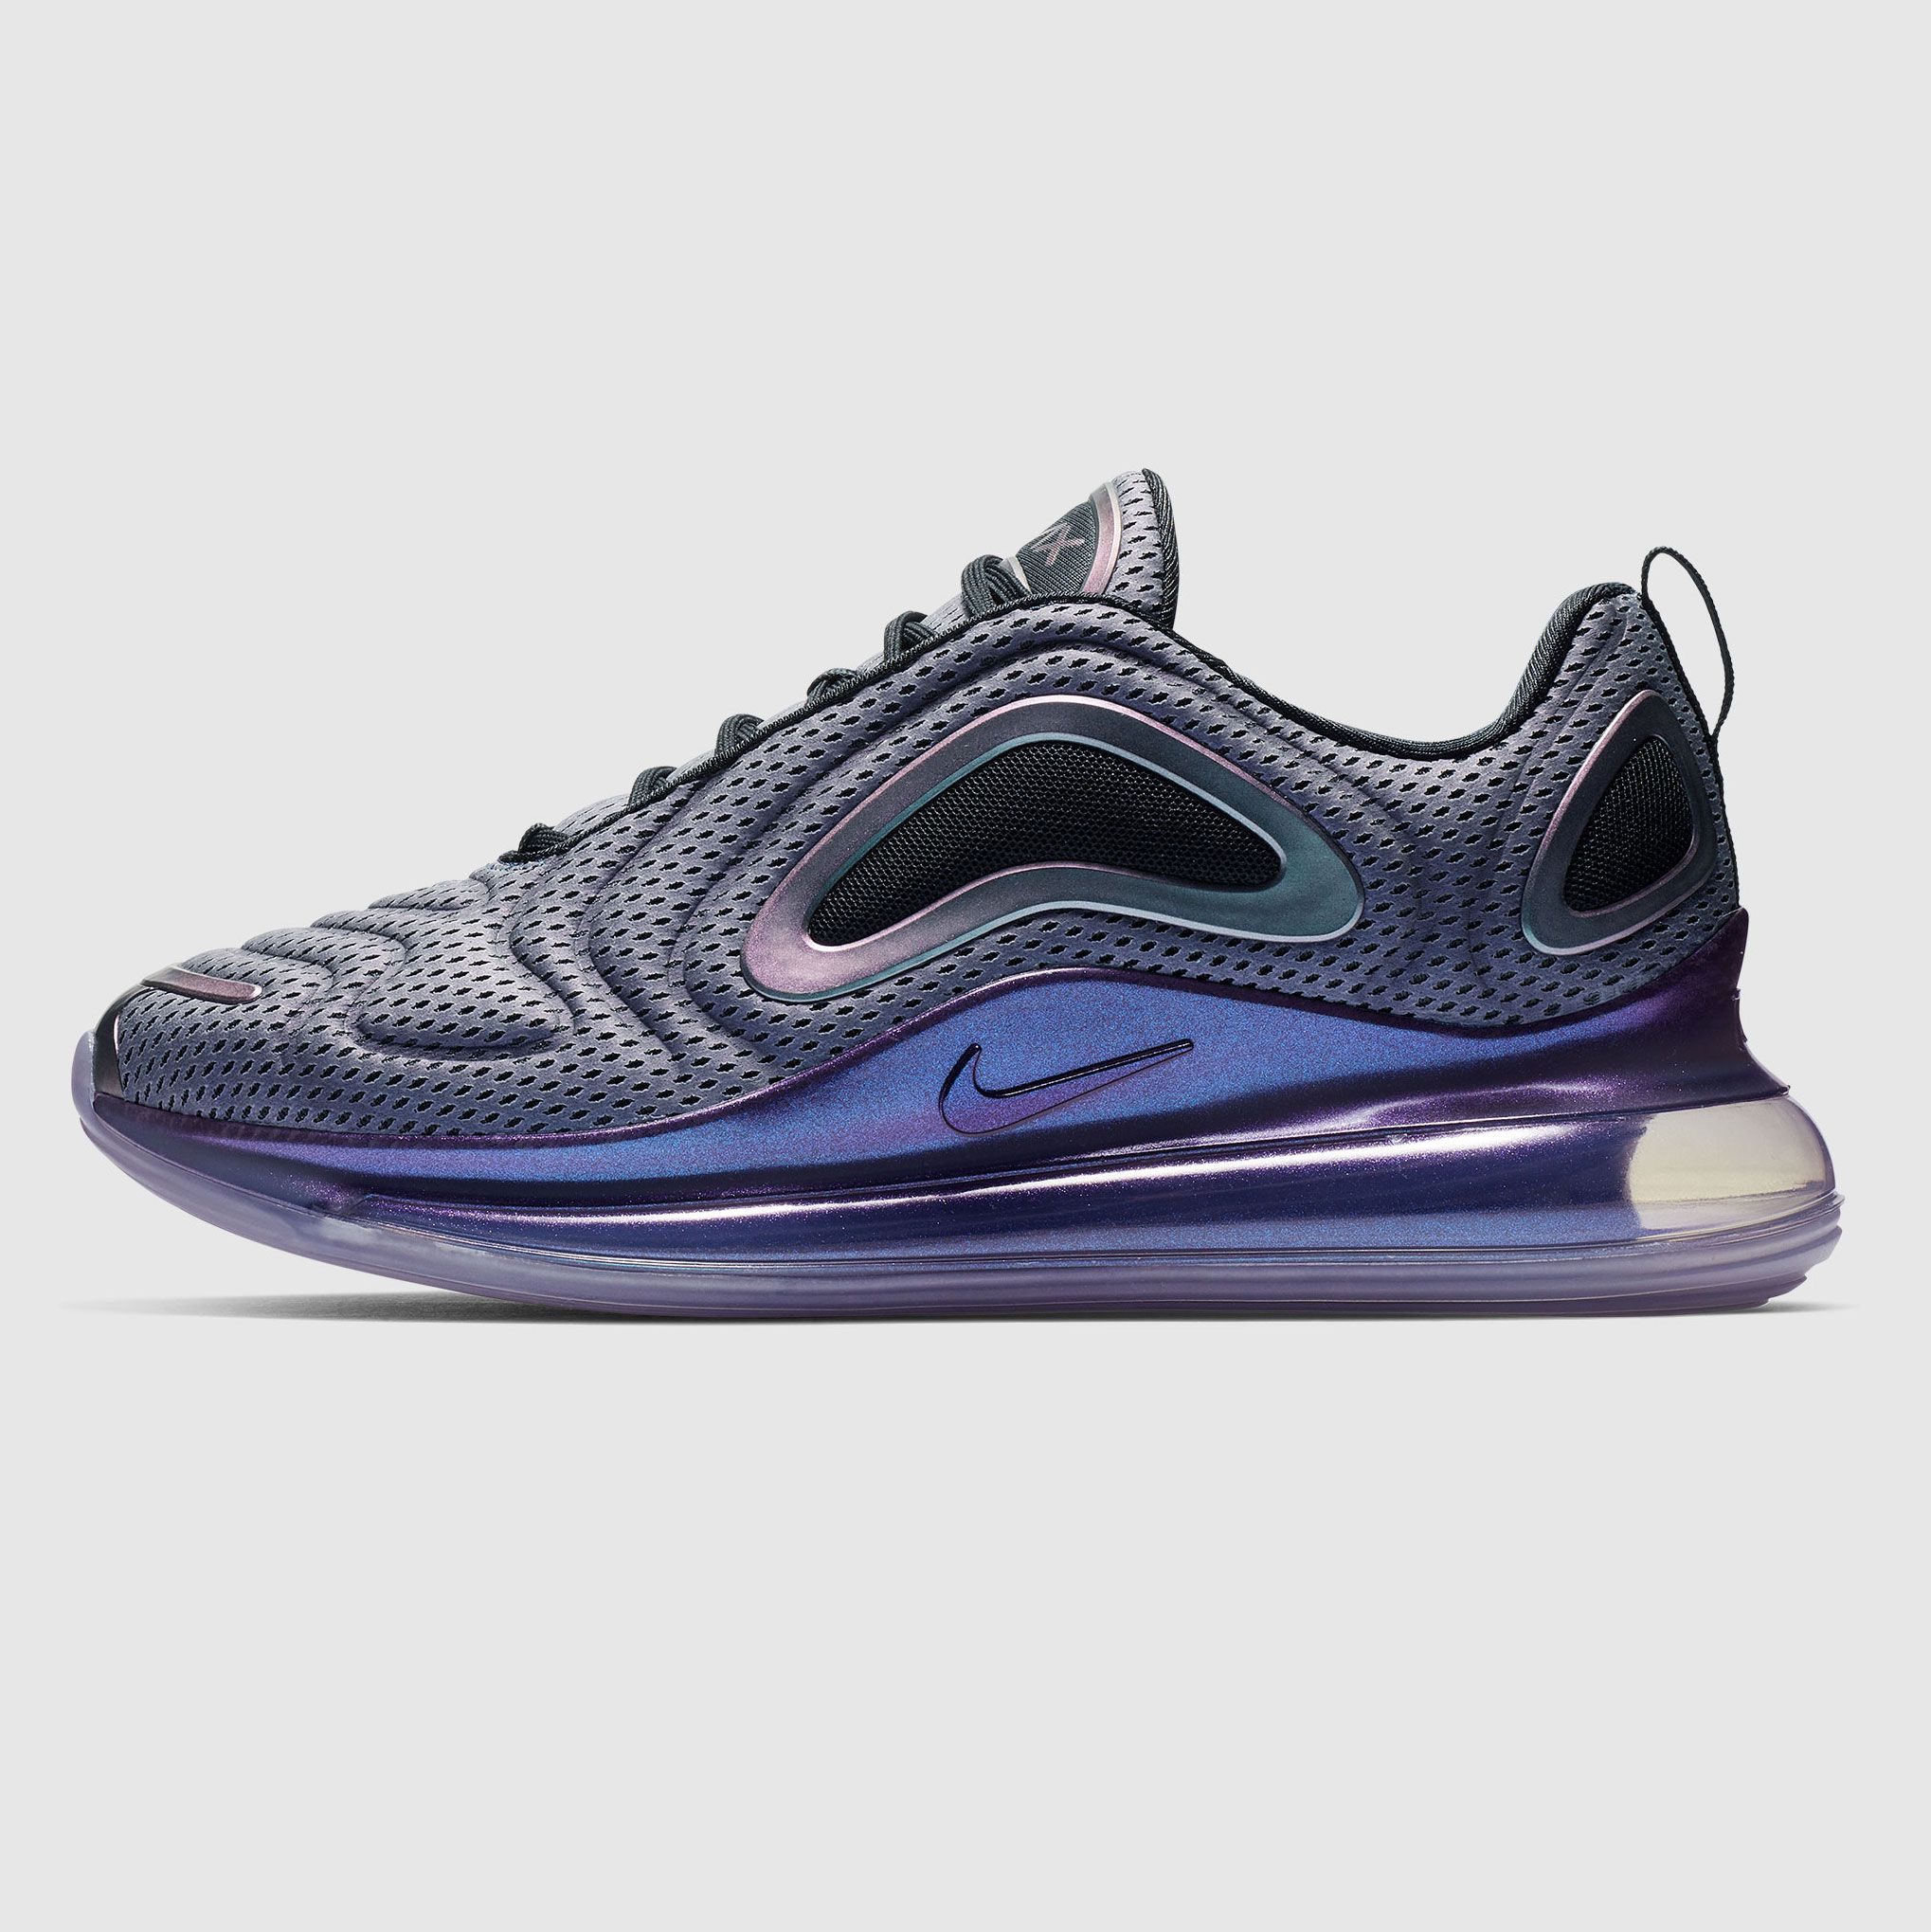 Nike s Air Max 720 Just Got Its Full 6ddd71165e6a